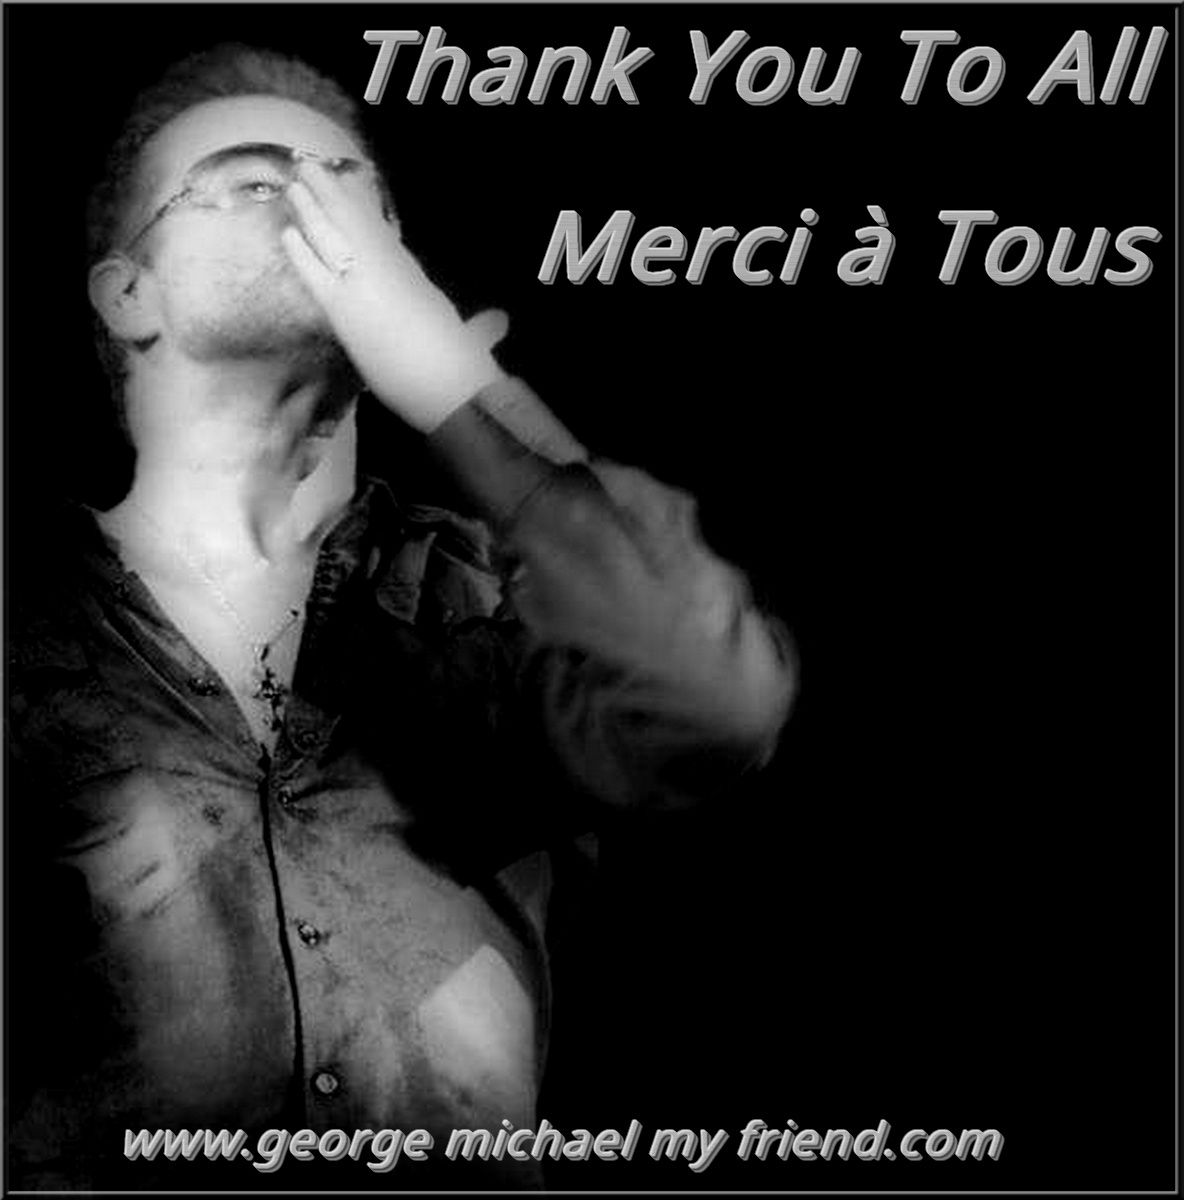 GEORGE MICHAEL - THANK YOU TO ALL !!